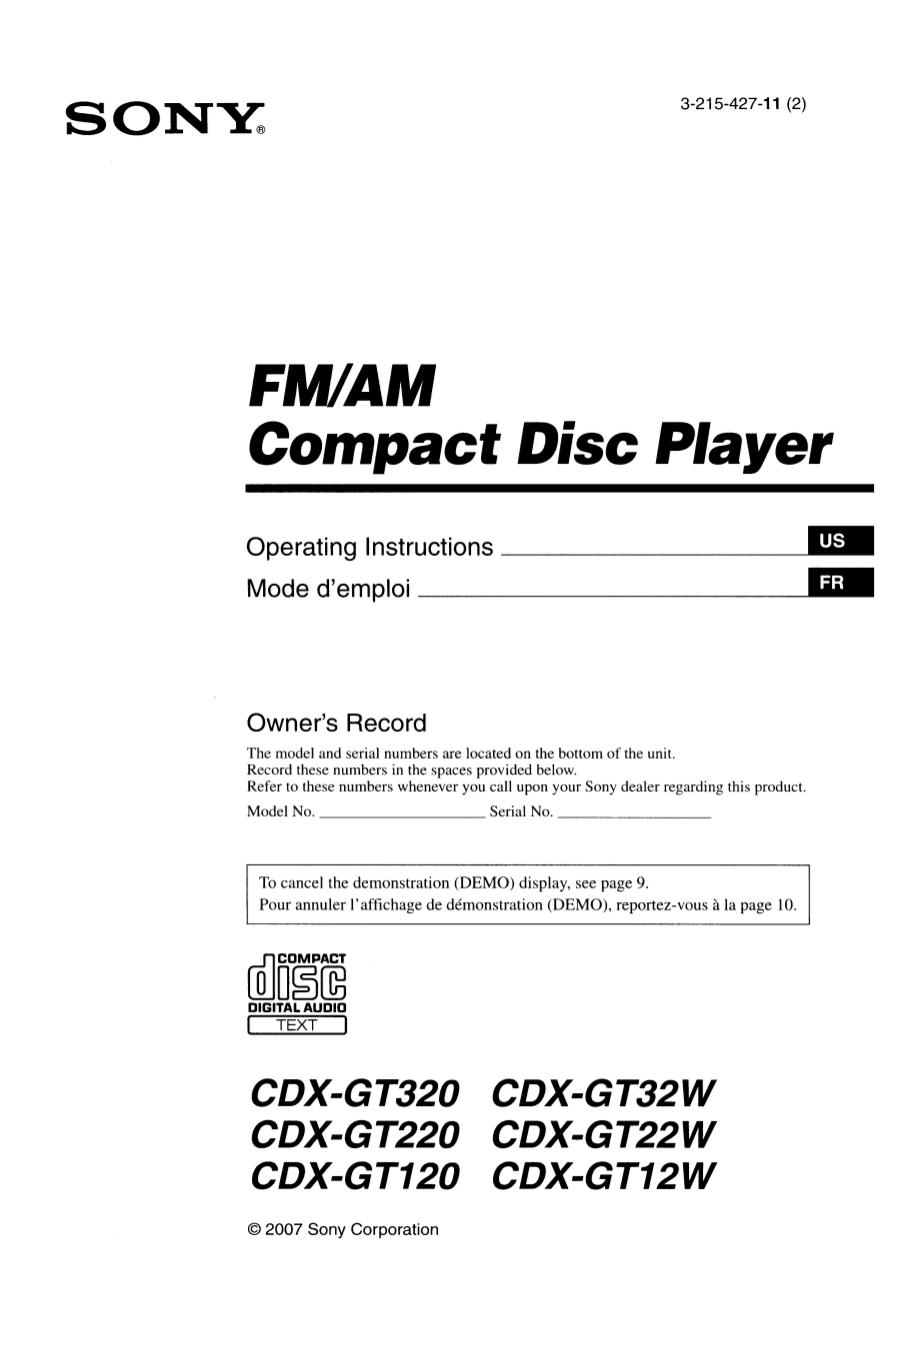 158gt120.pdf 0 download free pdf for sony cdx gt32w car receiver manual sony cdx gt32w wiring diagram at webbmarketing.co